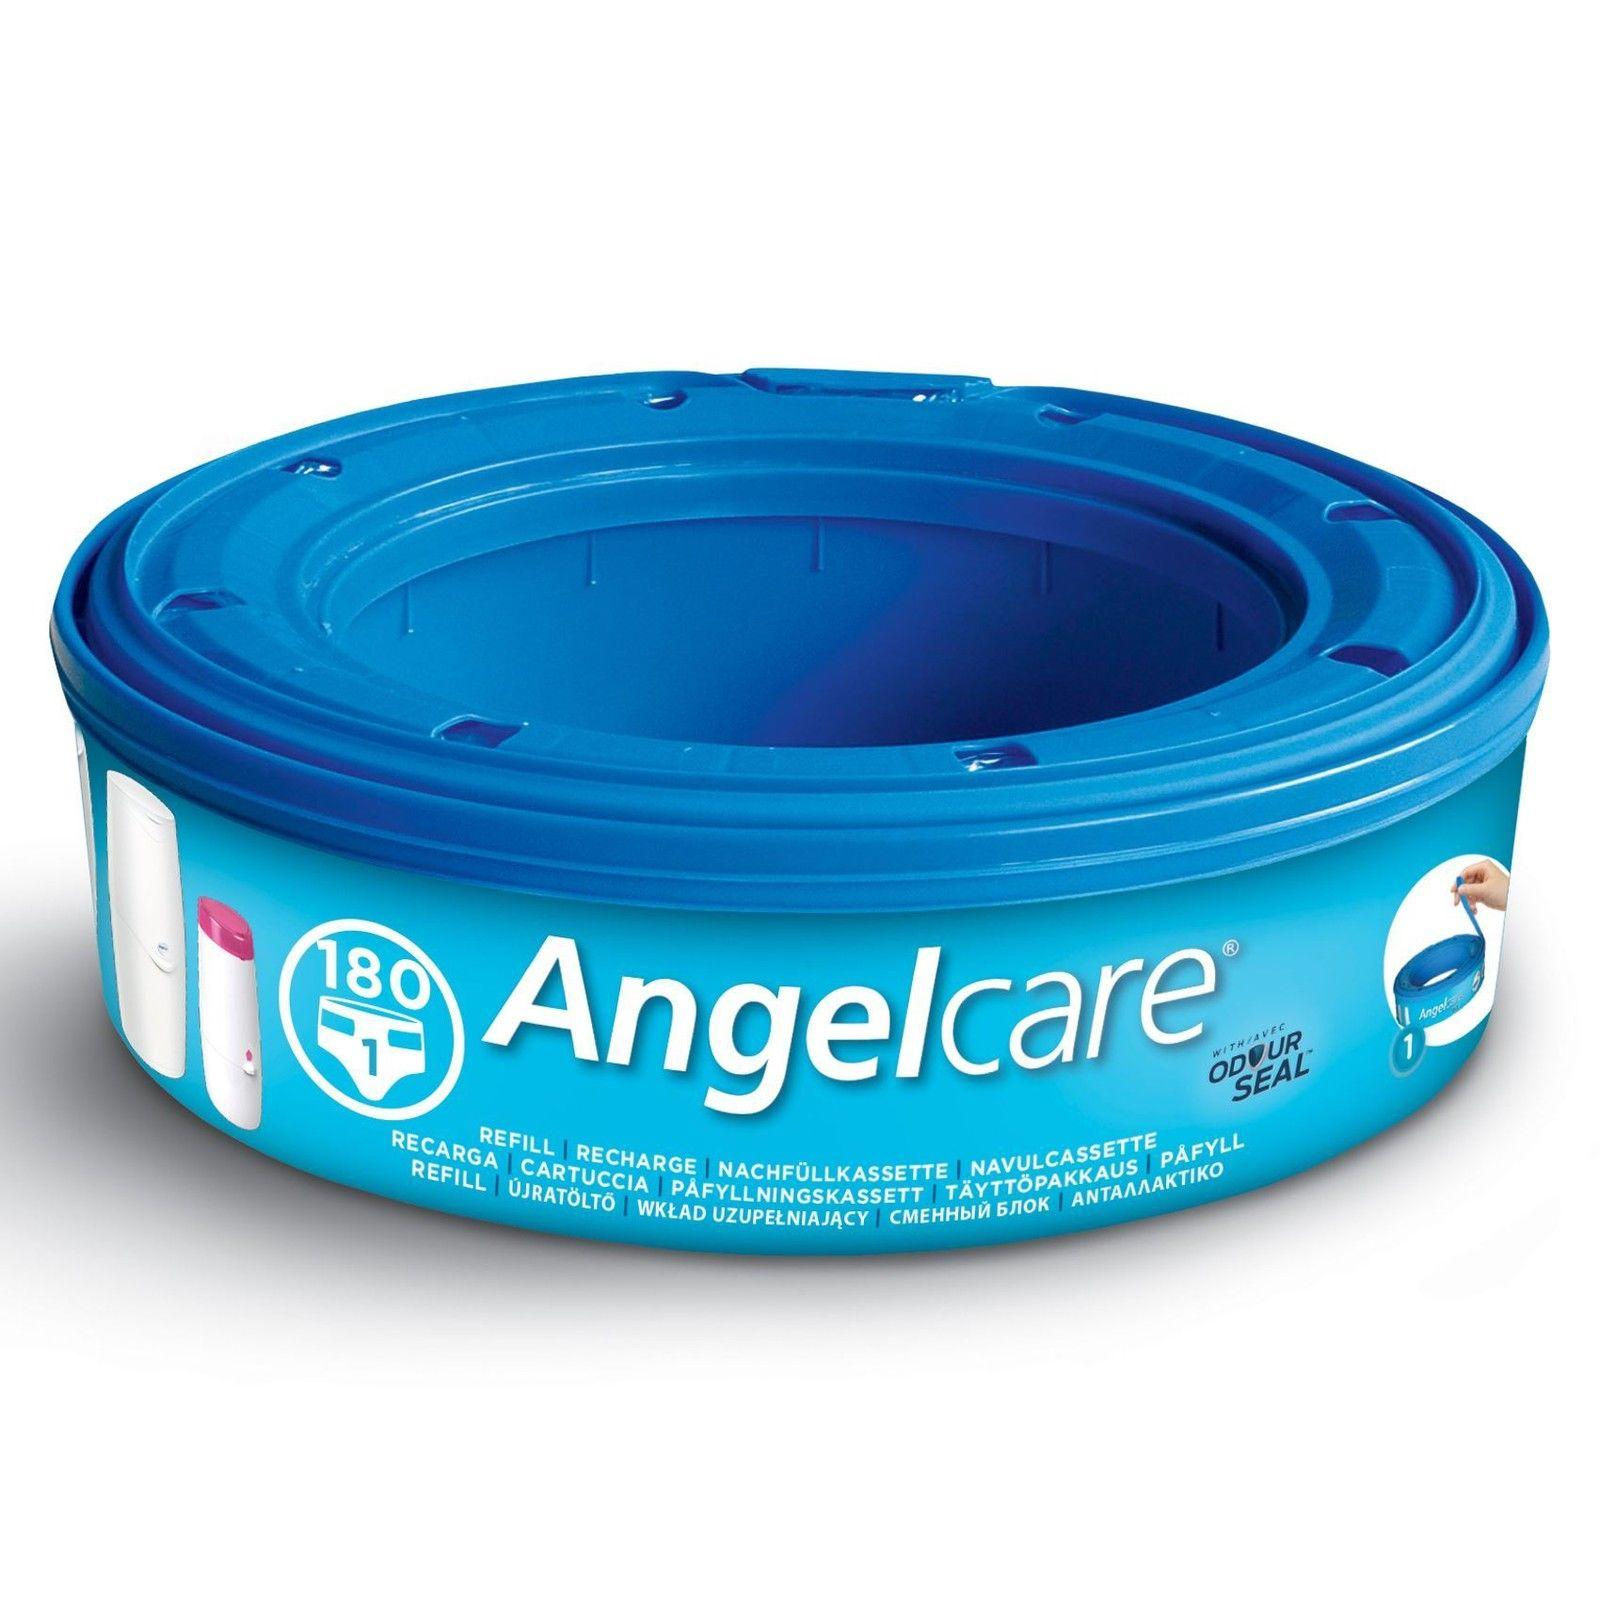 Angelcare Nappy Disposal System Refill Cassettes Wrappers Bags Sacks 1 Pc By Sterne Mond Co.